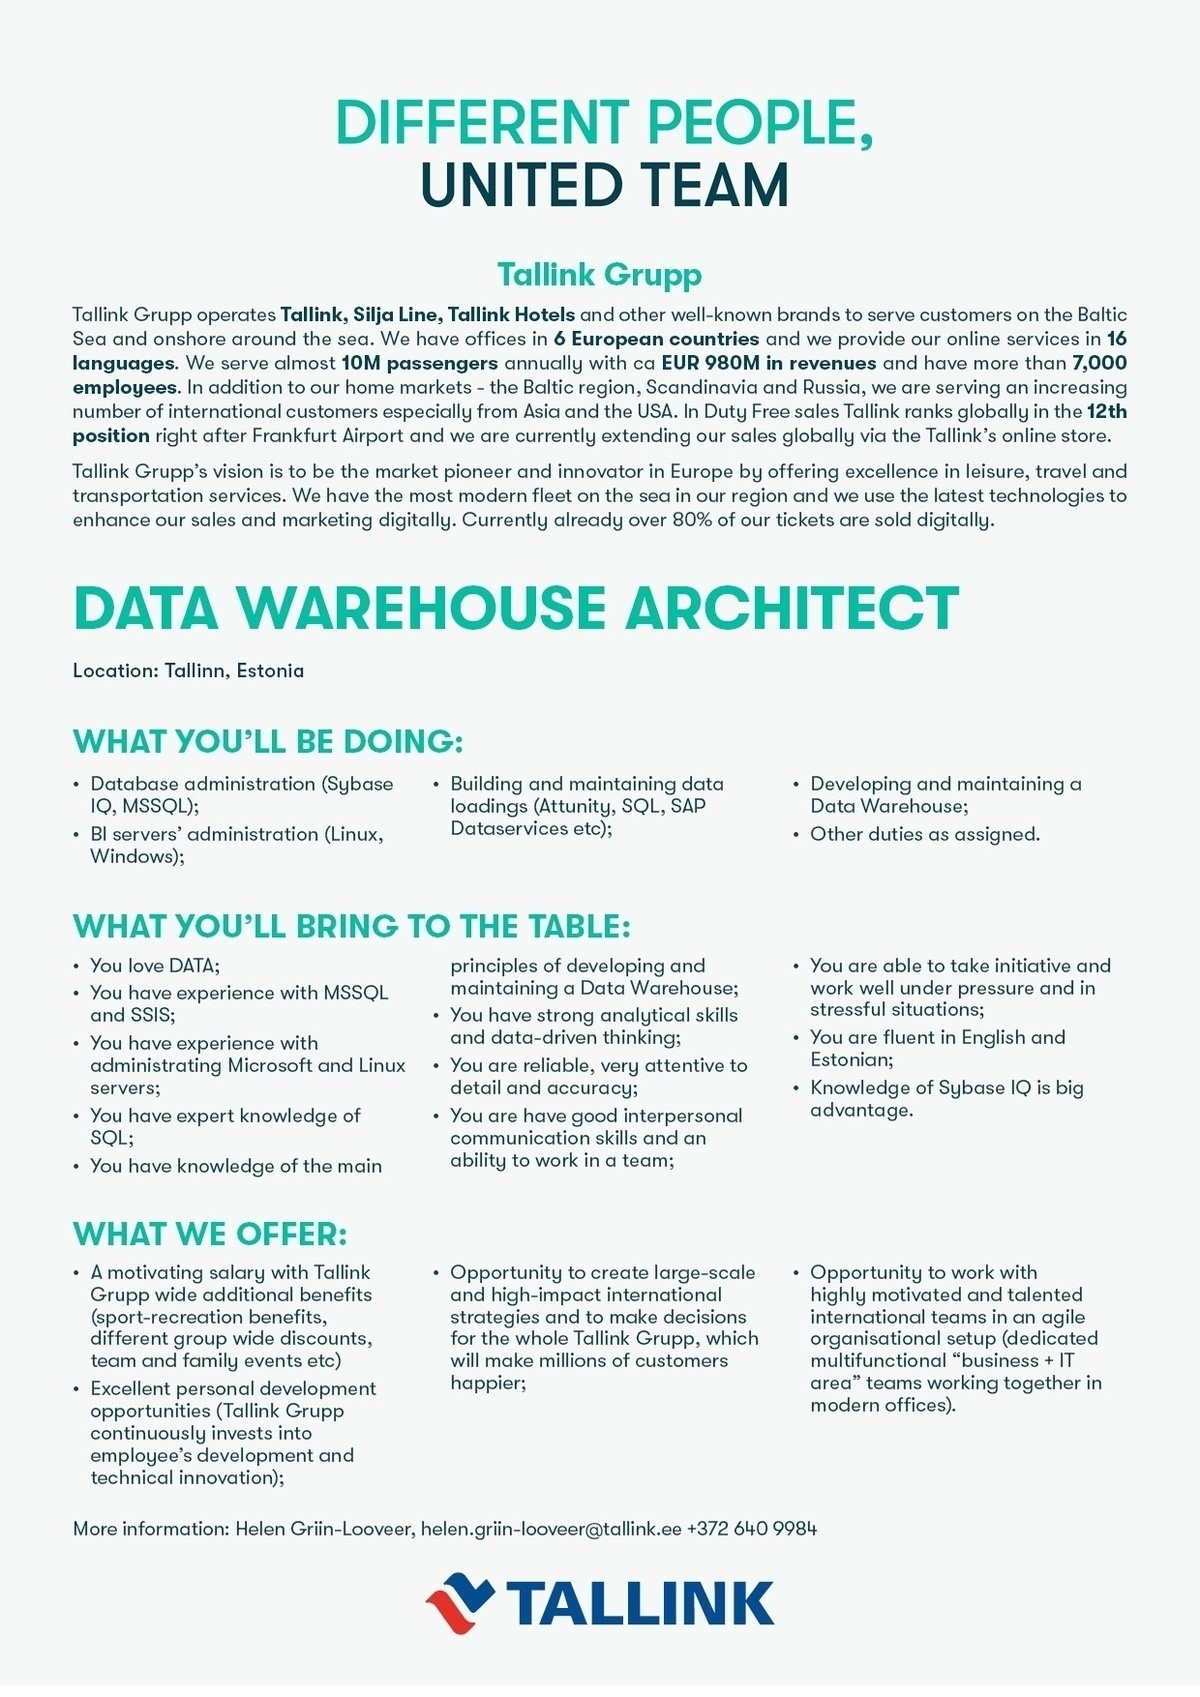 CV Market´s client DATA WAREHOUSE ARCHITECT